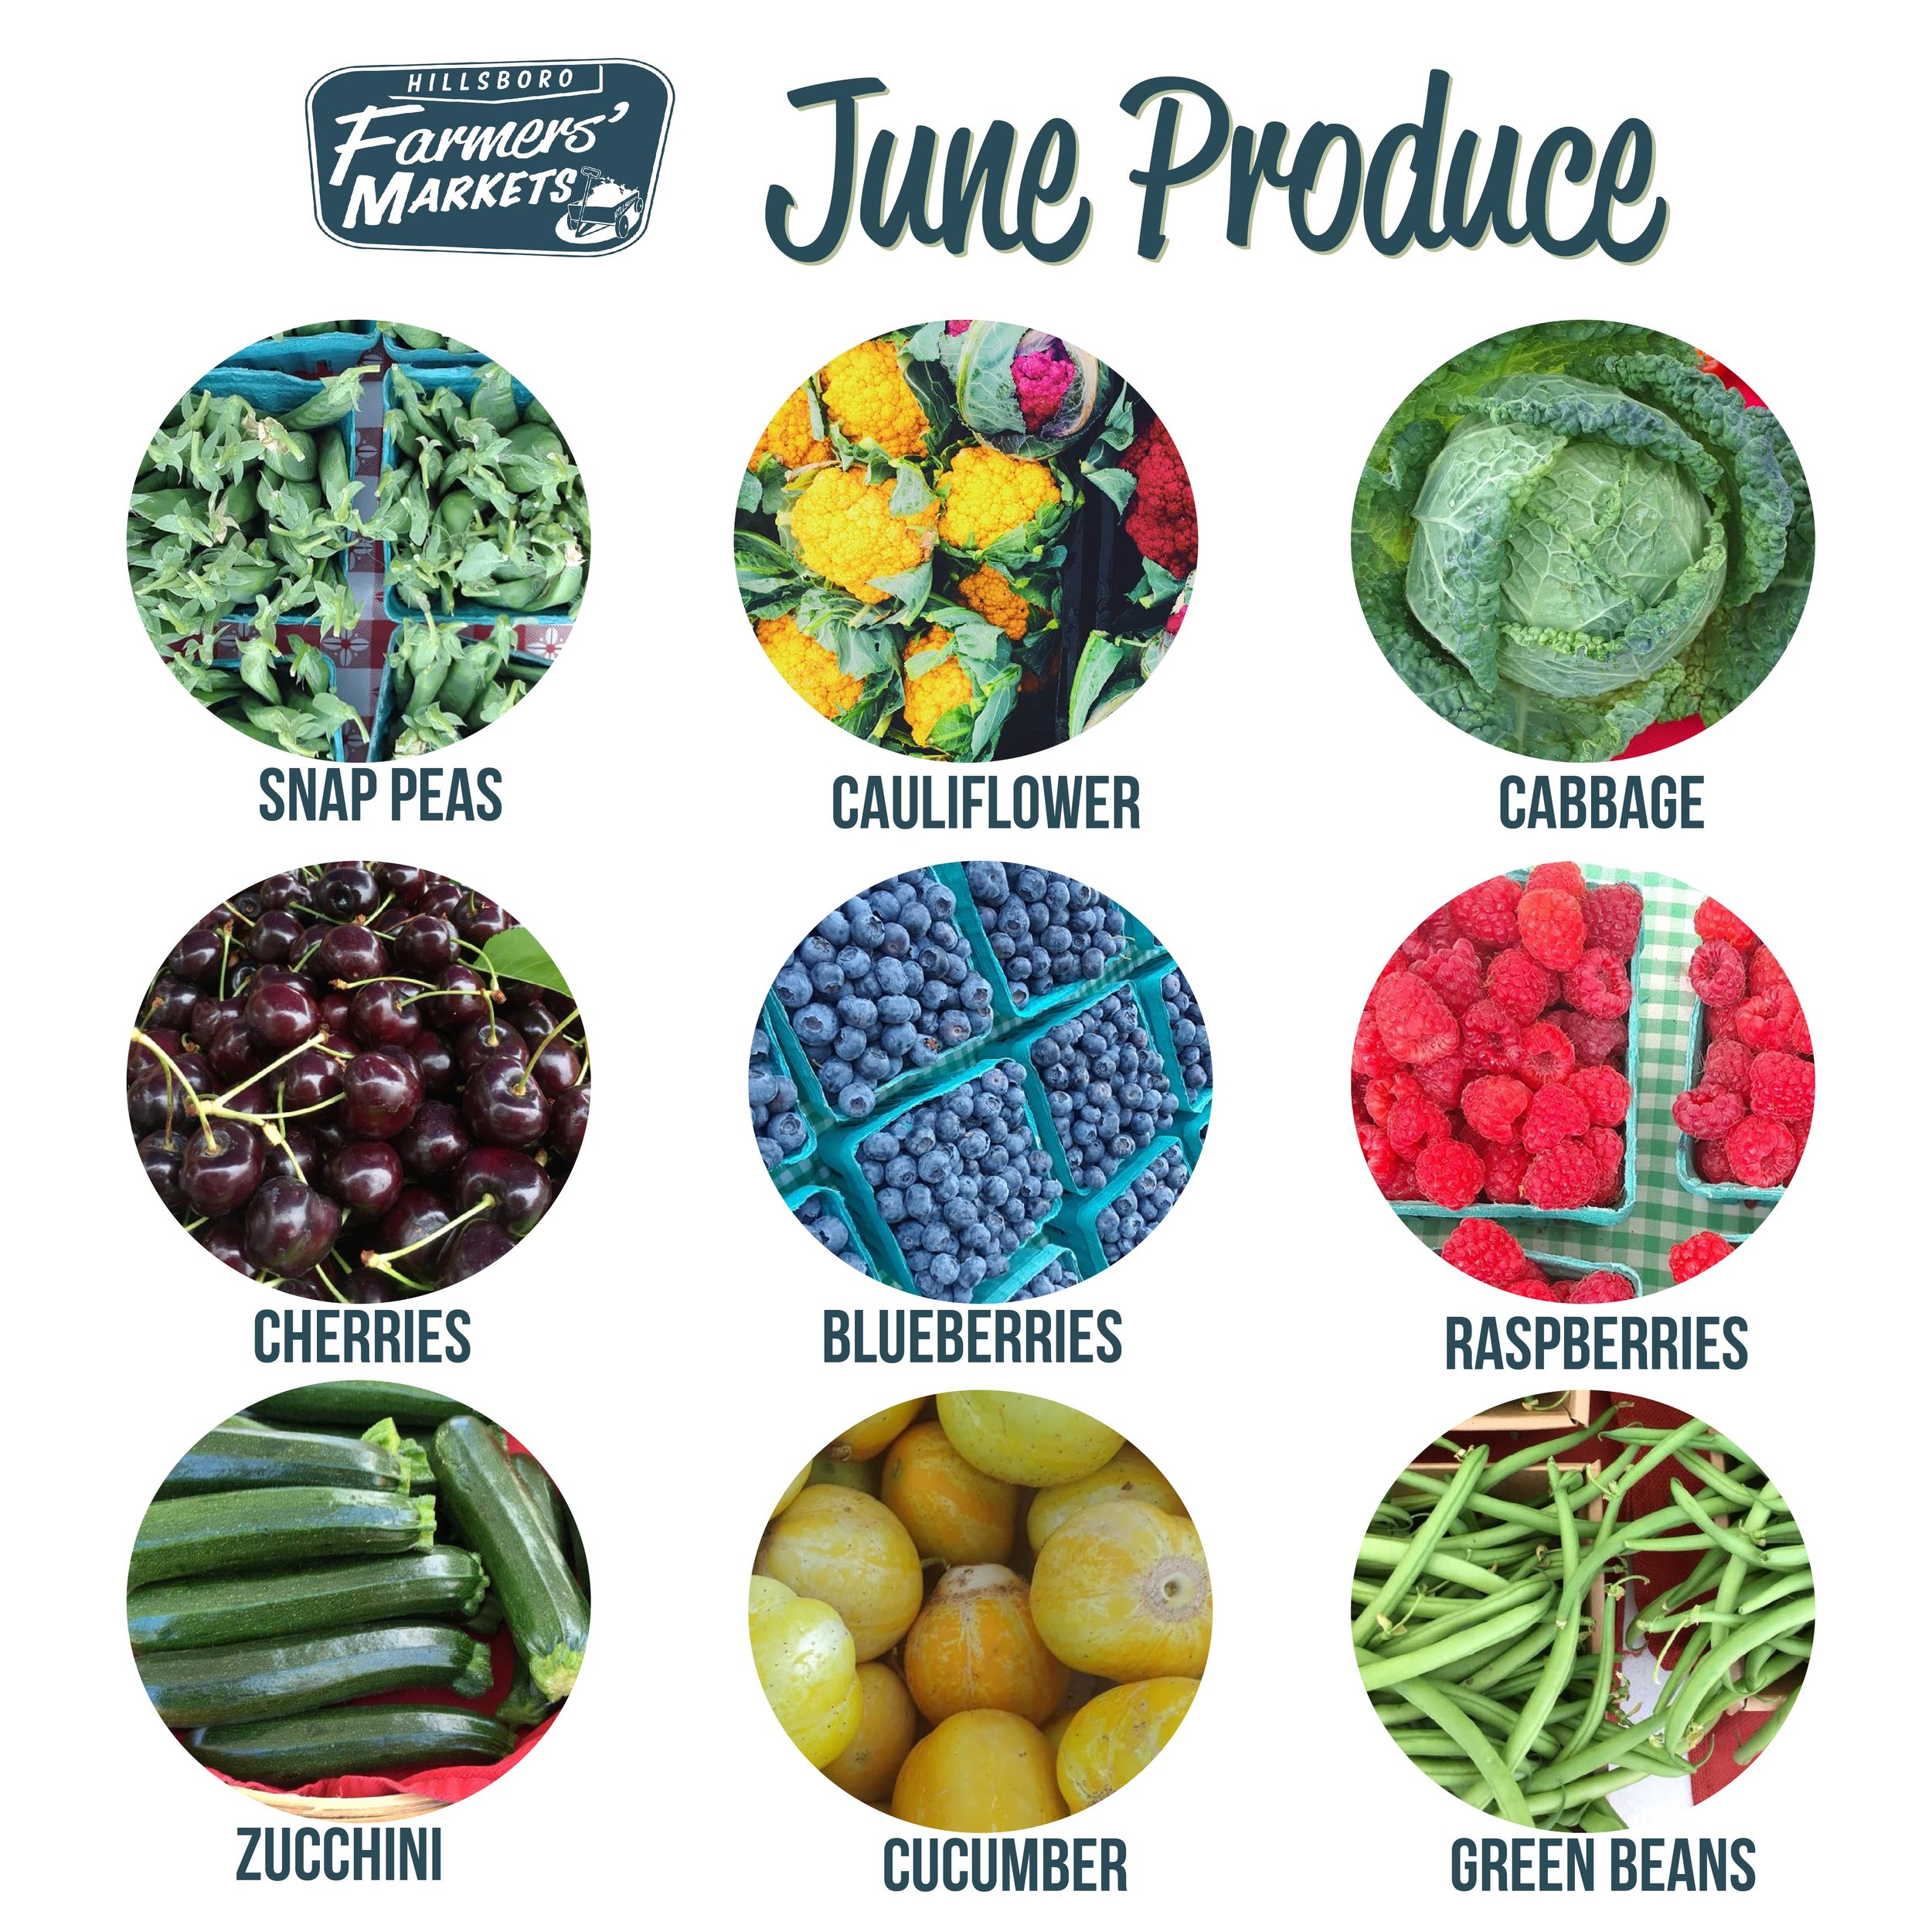 June is here and the official start of summer is just around the corner! We are super excited for the amazing and colorful produce that will be coming our way! Be on the lookout for Farmers MArket favorites like blueberries, Zucchini, Cherries, and Snap Peas. -